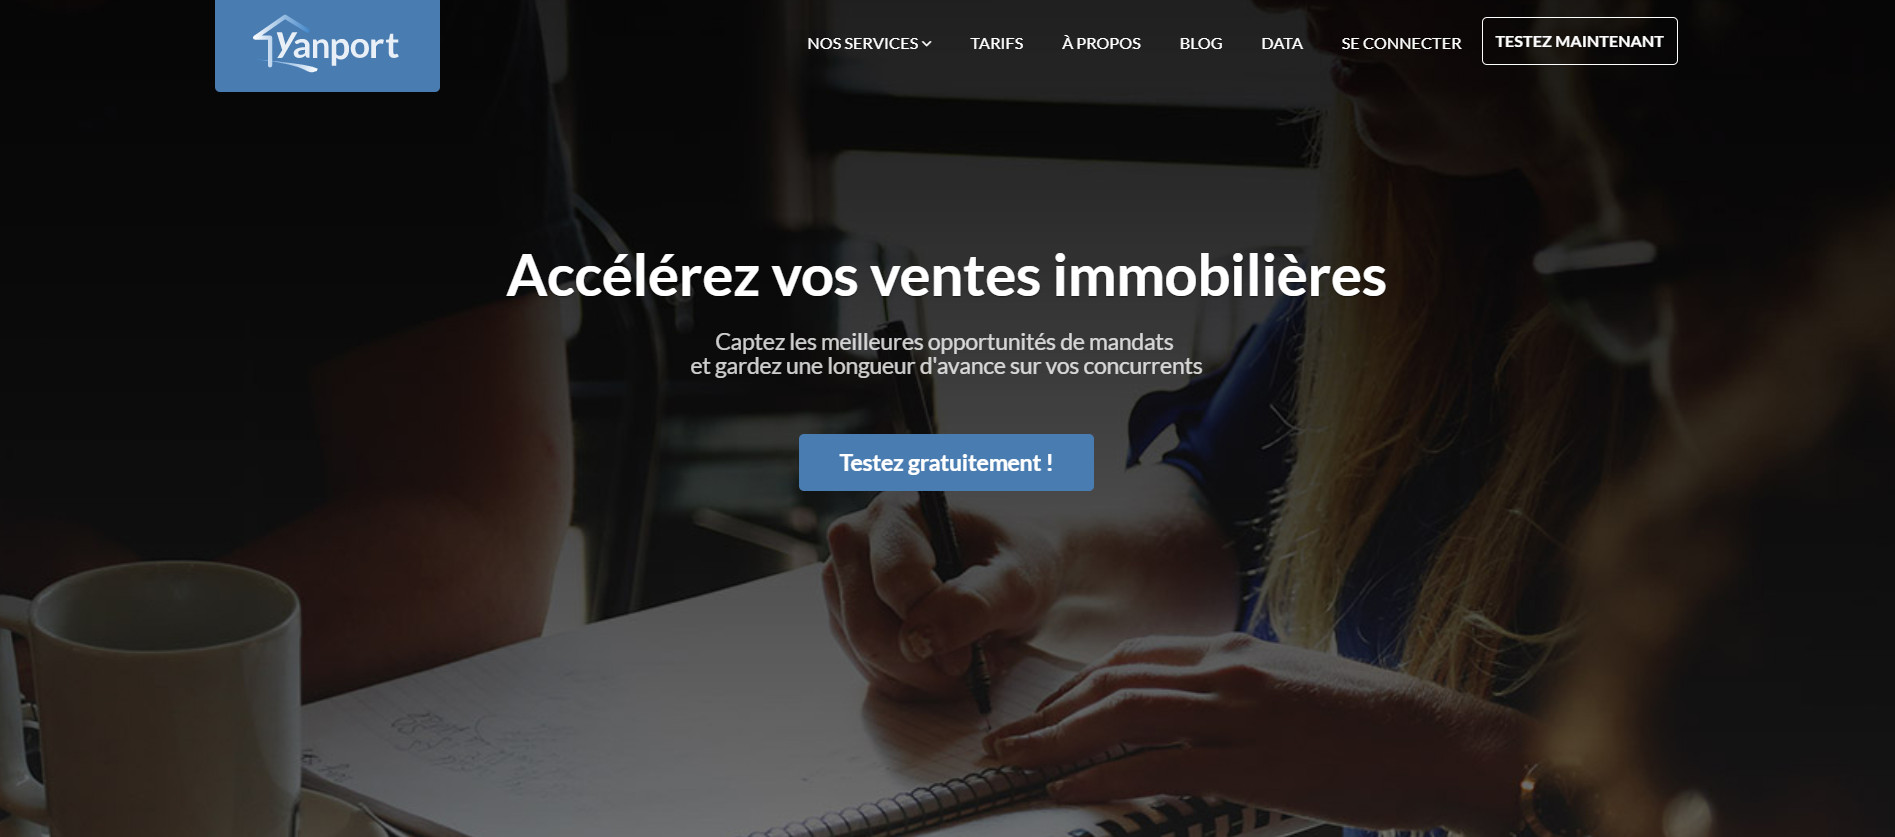 Startup Immobilier Pige Immobilier Yanport